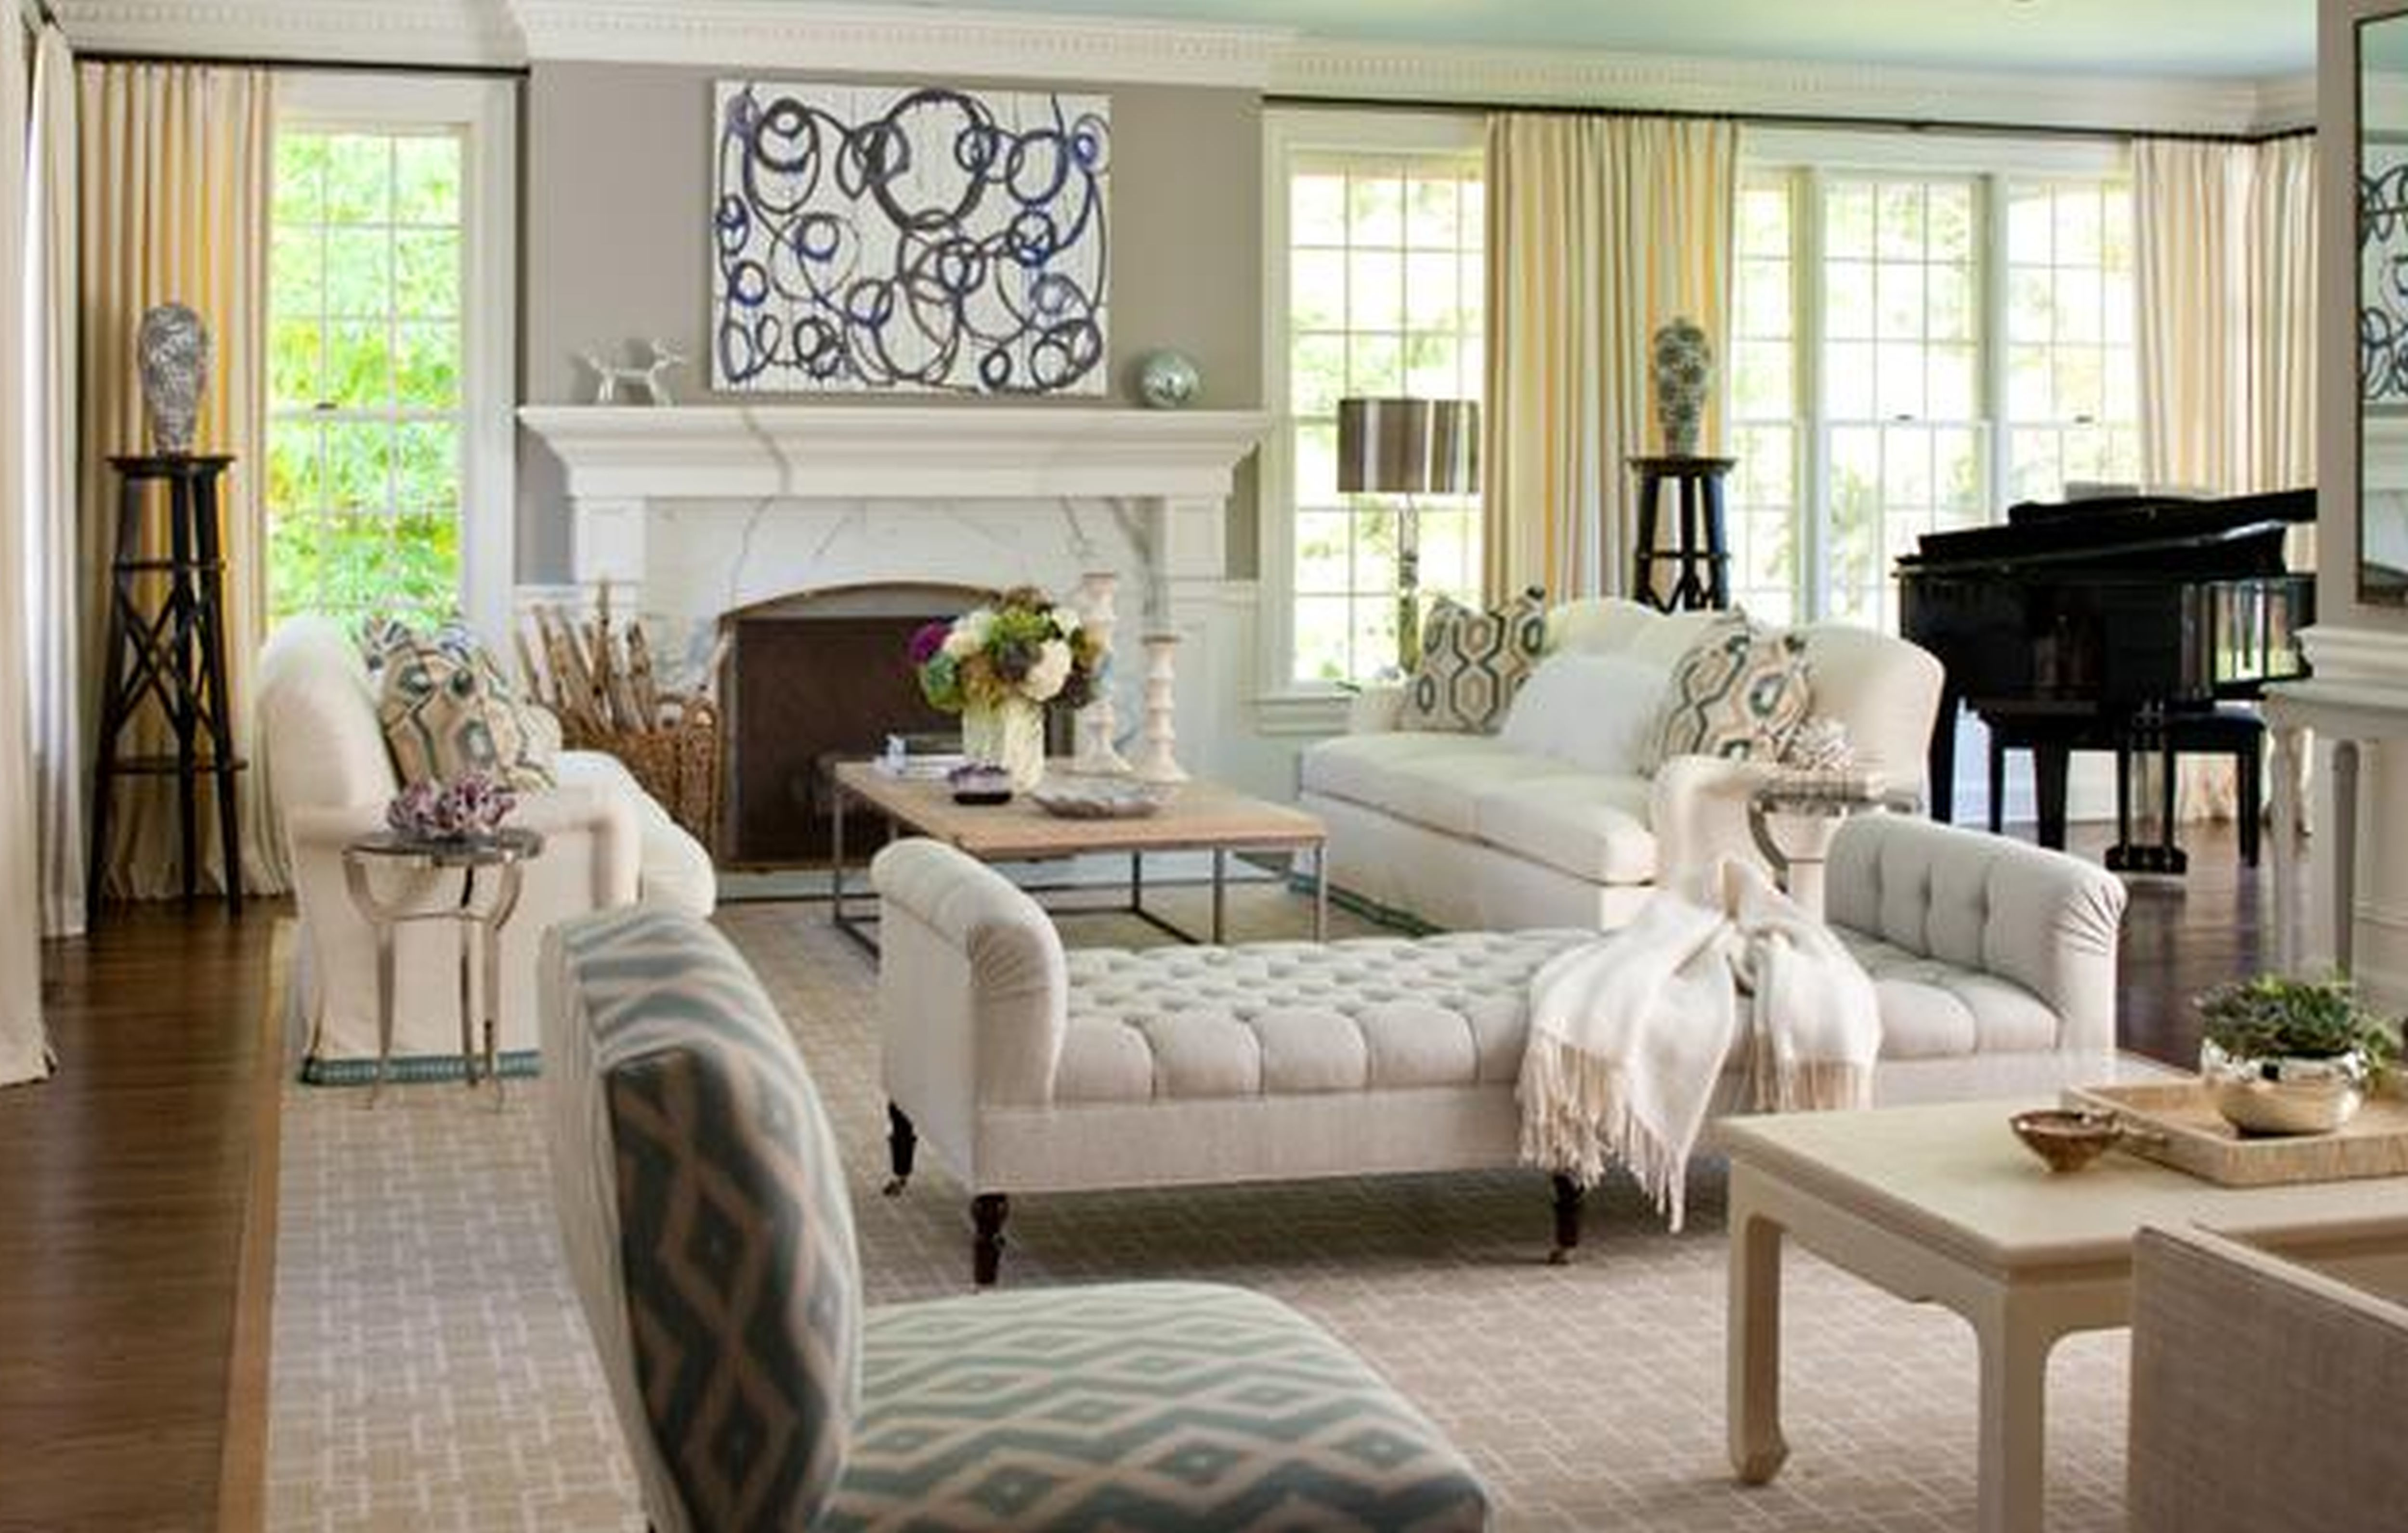 Living Room Furniture Layout With Fireplace exquisite white living room furniture ideas with white fireplace